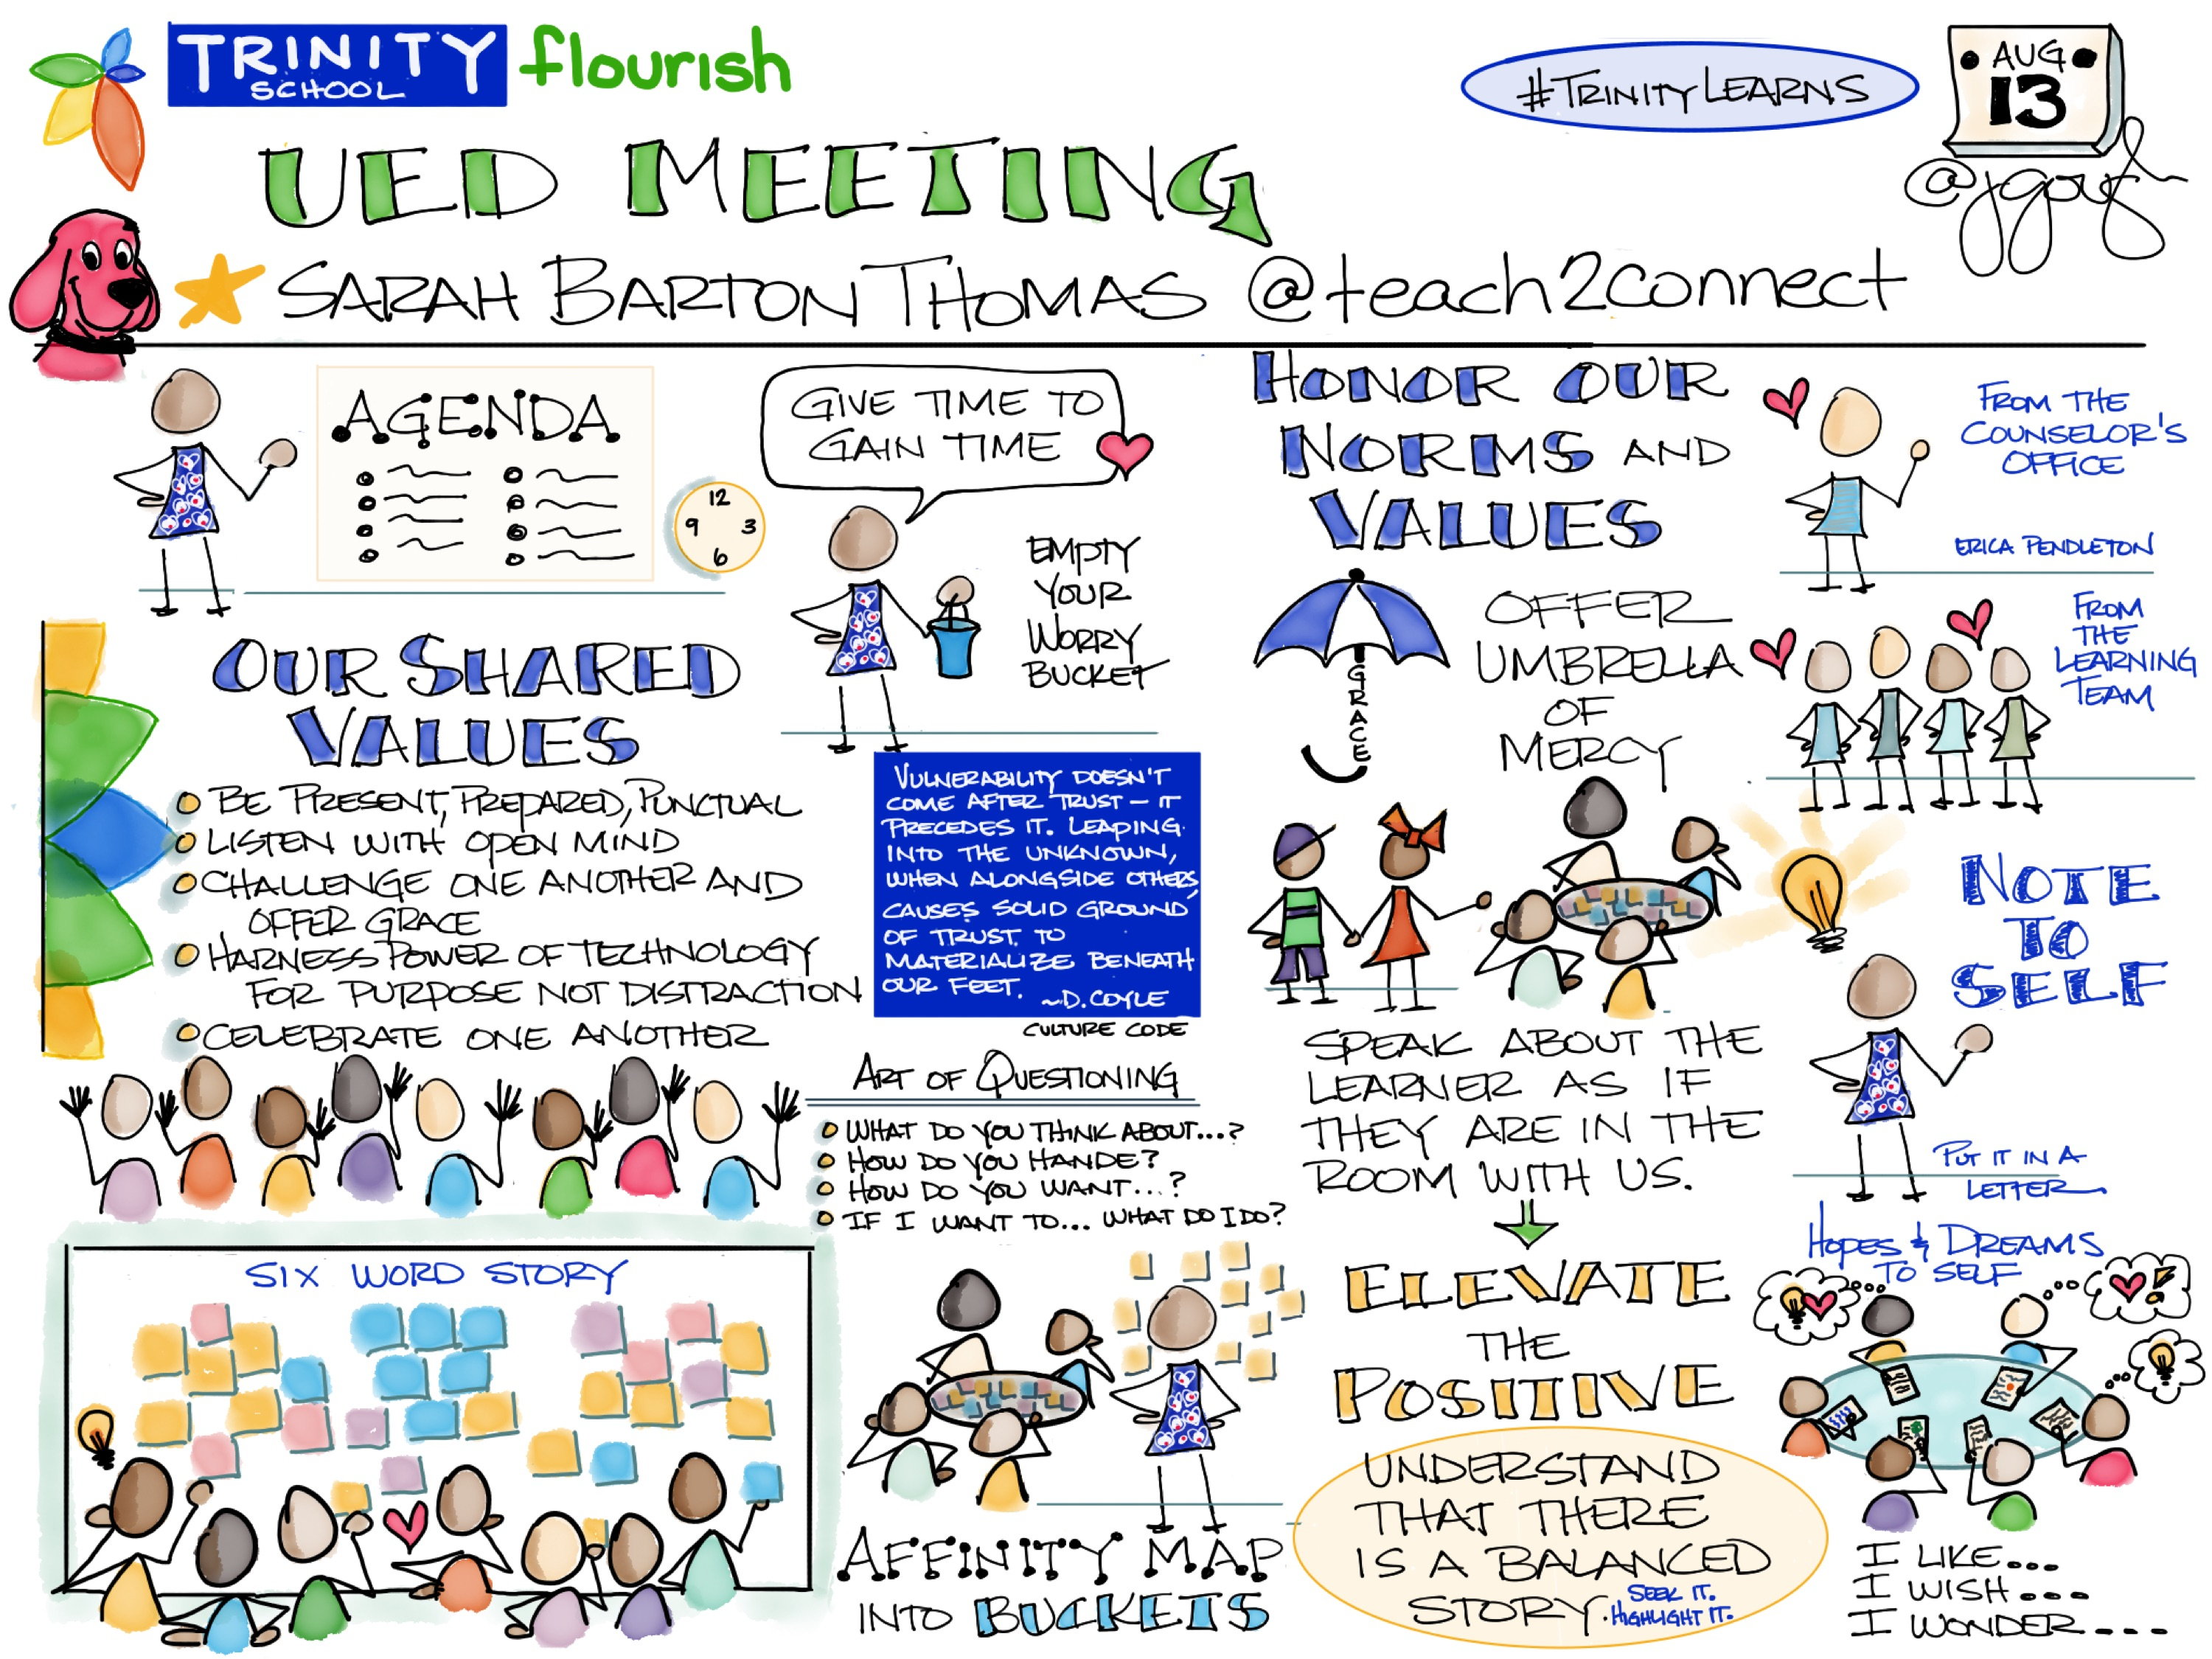 @teach2connect UED Meeting #TrinityLearns give time to gain time.